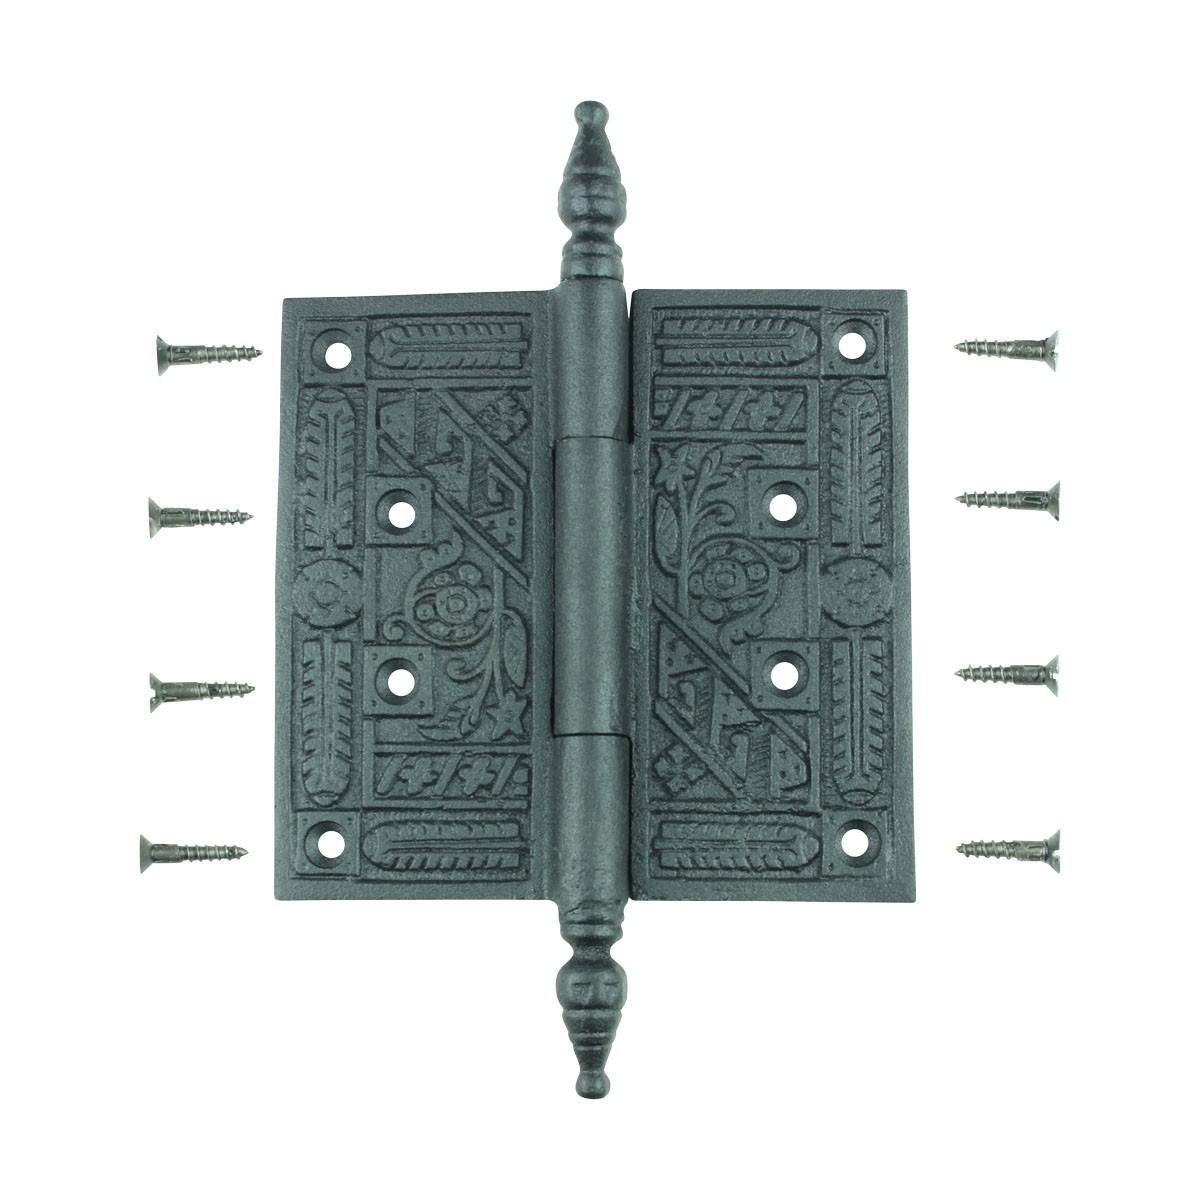 Wrought Iron Butt Hinge Black Victorian Steeple Tip Steeple Tip Hinge Butt Hinge Wrought Iron Victorian Hinges